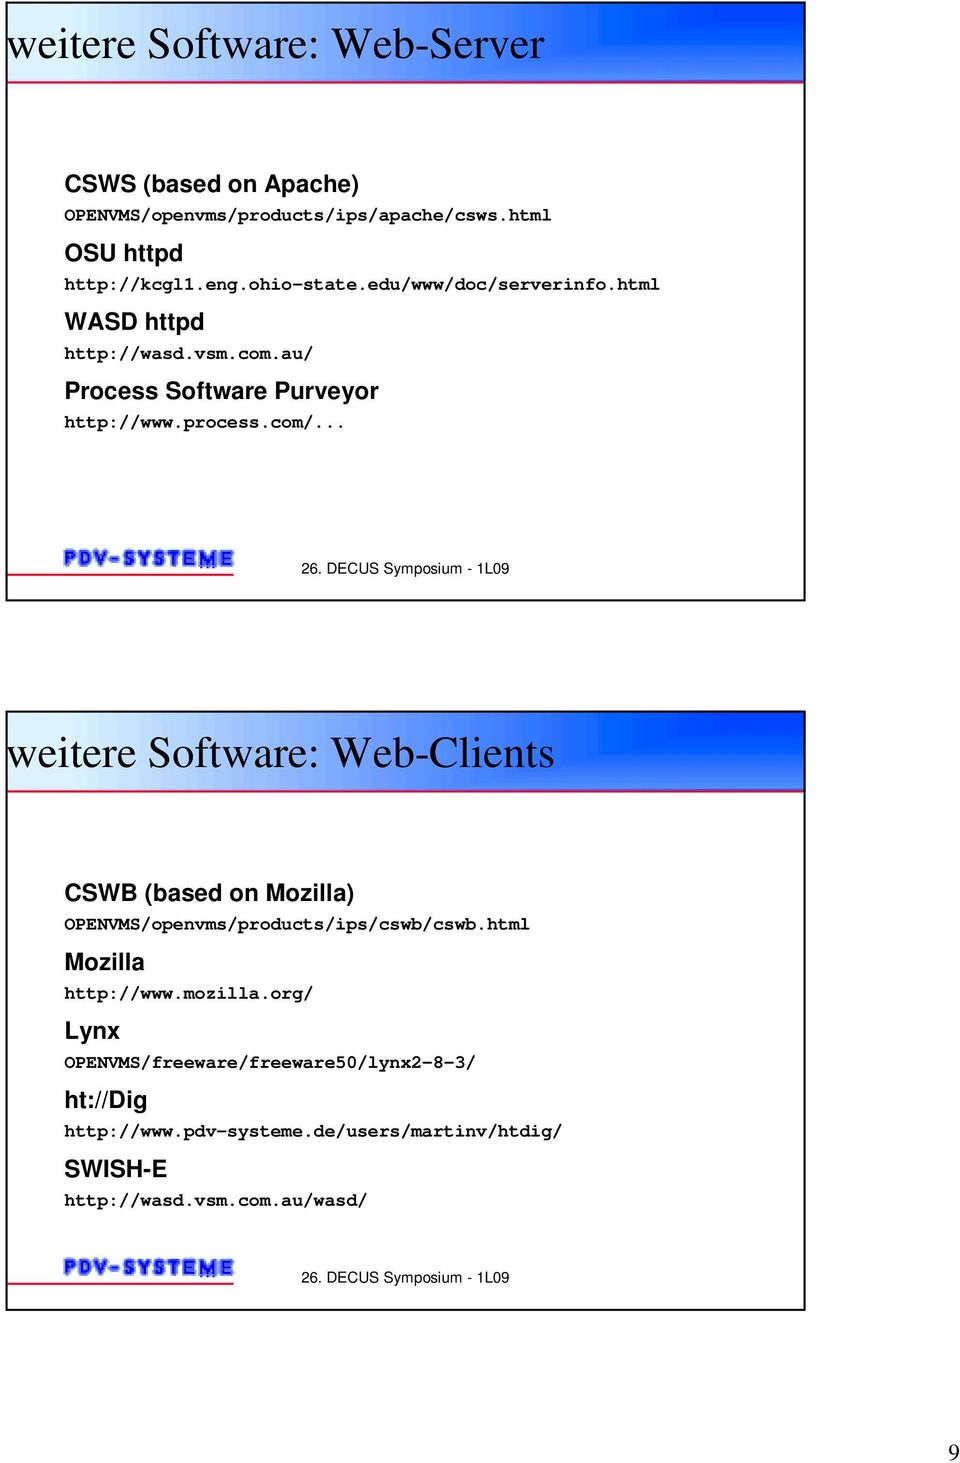 .. weitere Software: Web-Clients CSWB (based on Mozilla) OPENVMS/openvms/products/ips/cswb/cswb.html Mozilla http://www.mozilla.